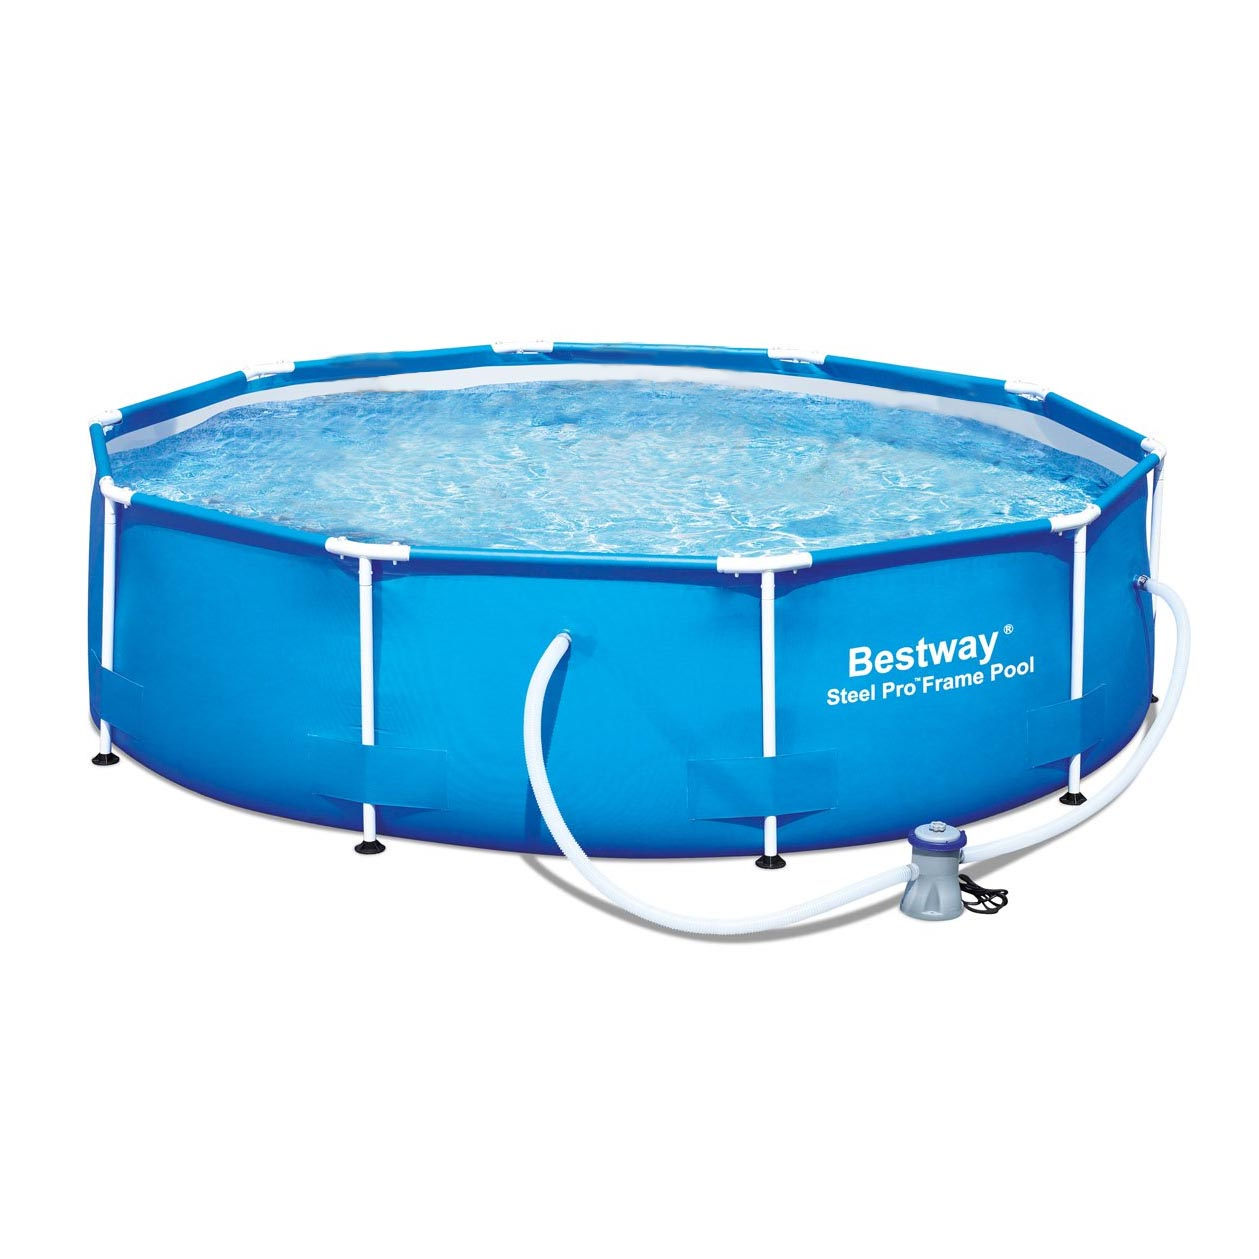 Bestway 12 39 x 36 steel pro frame above ground family swimming pool set w pump ebay - Steel frame pool ...